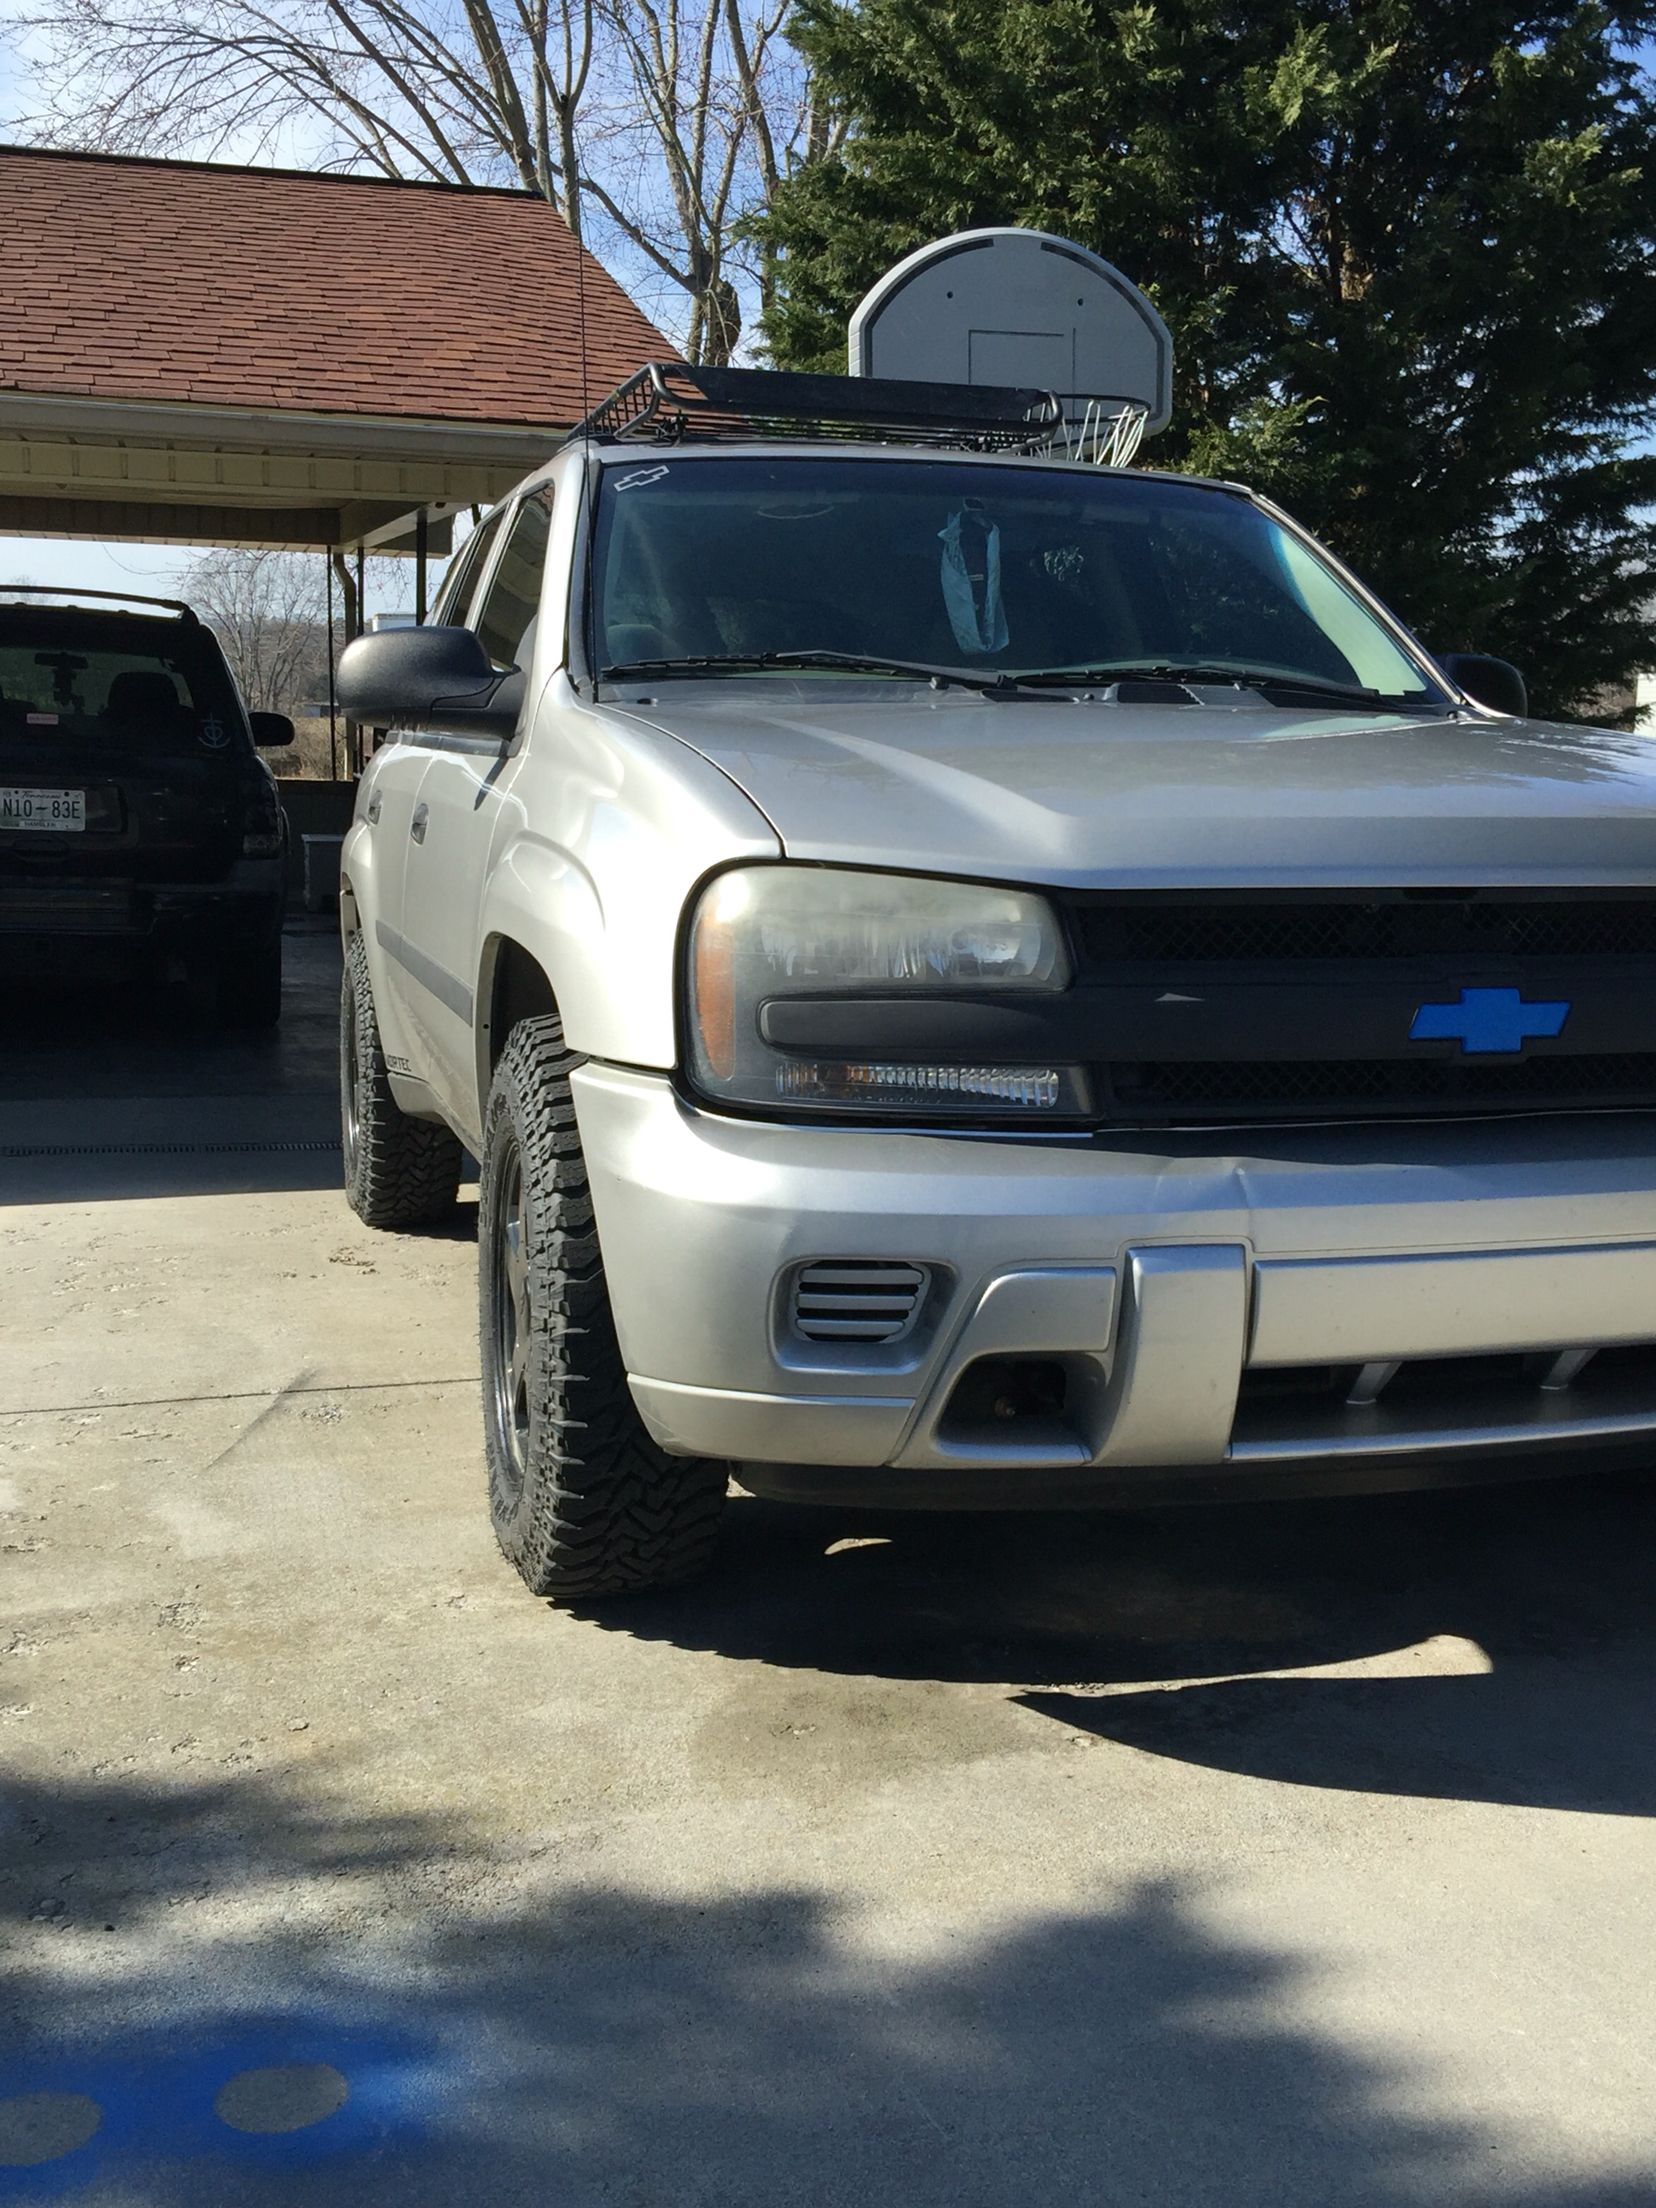 New 1 5 Inch Wheel Spacers On The Trailblazer Derrickrucker02build Chevy Trailblazer Trailblazer Gmc Envoy